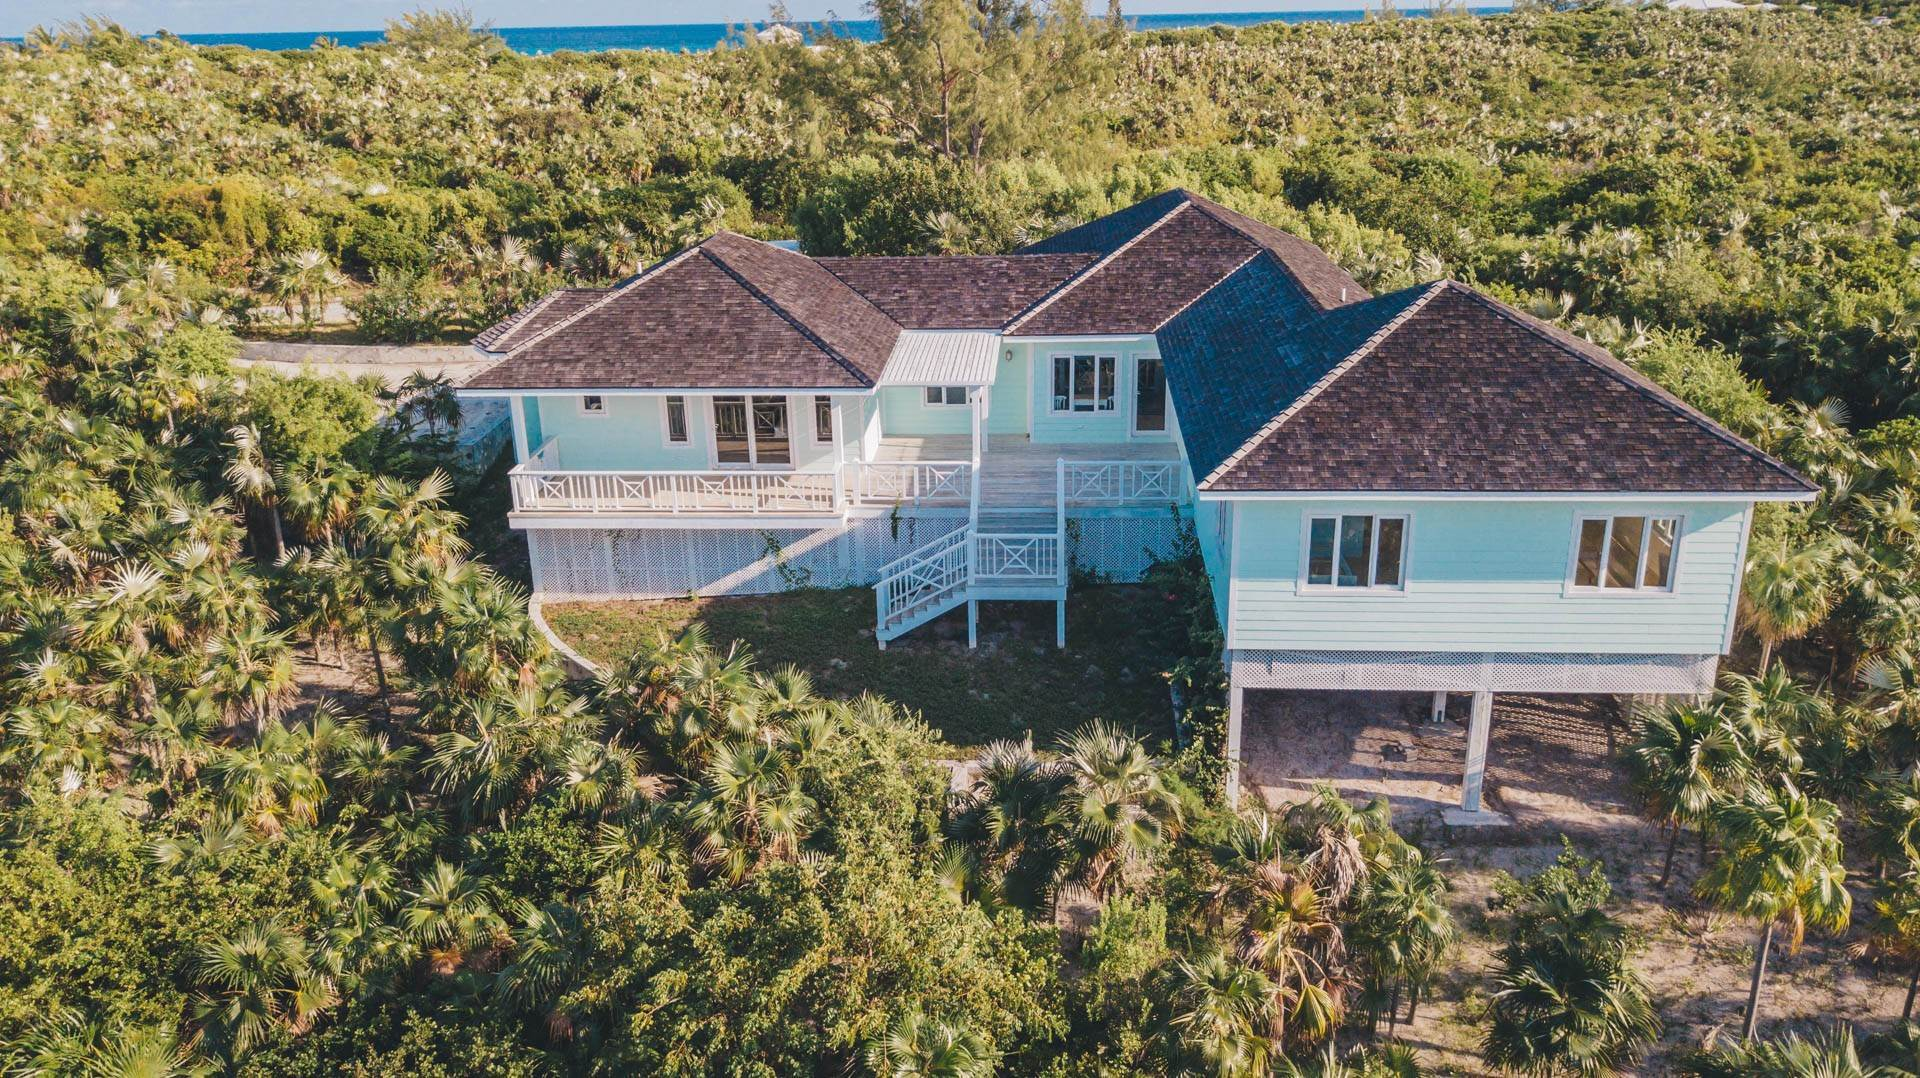 30. Single Family Homes for Sale at Savannah Sound Home - Windermere Island - MLS 44478 Windermere Island, Eleuthera, Bahamas